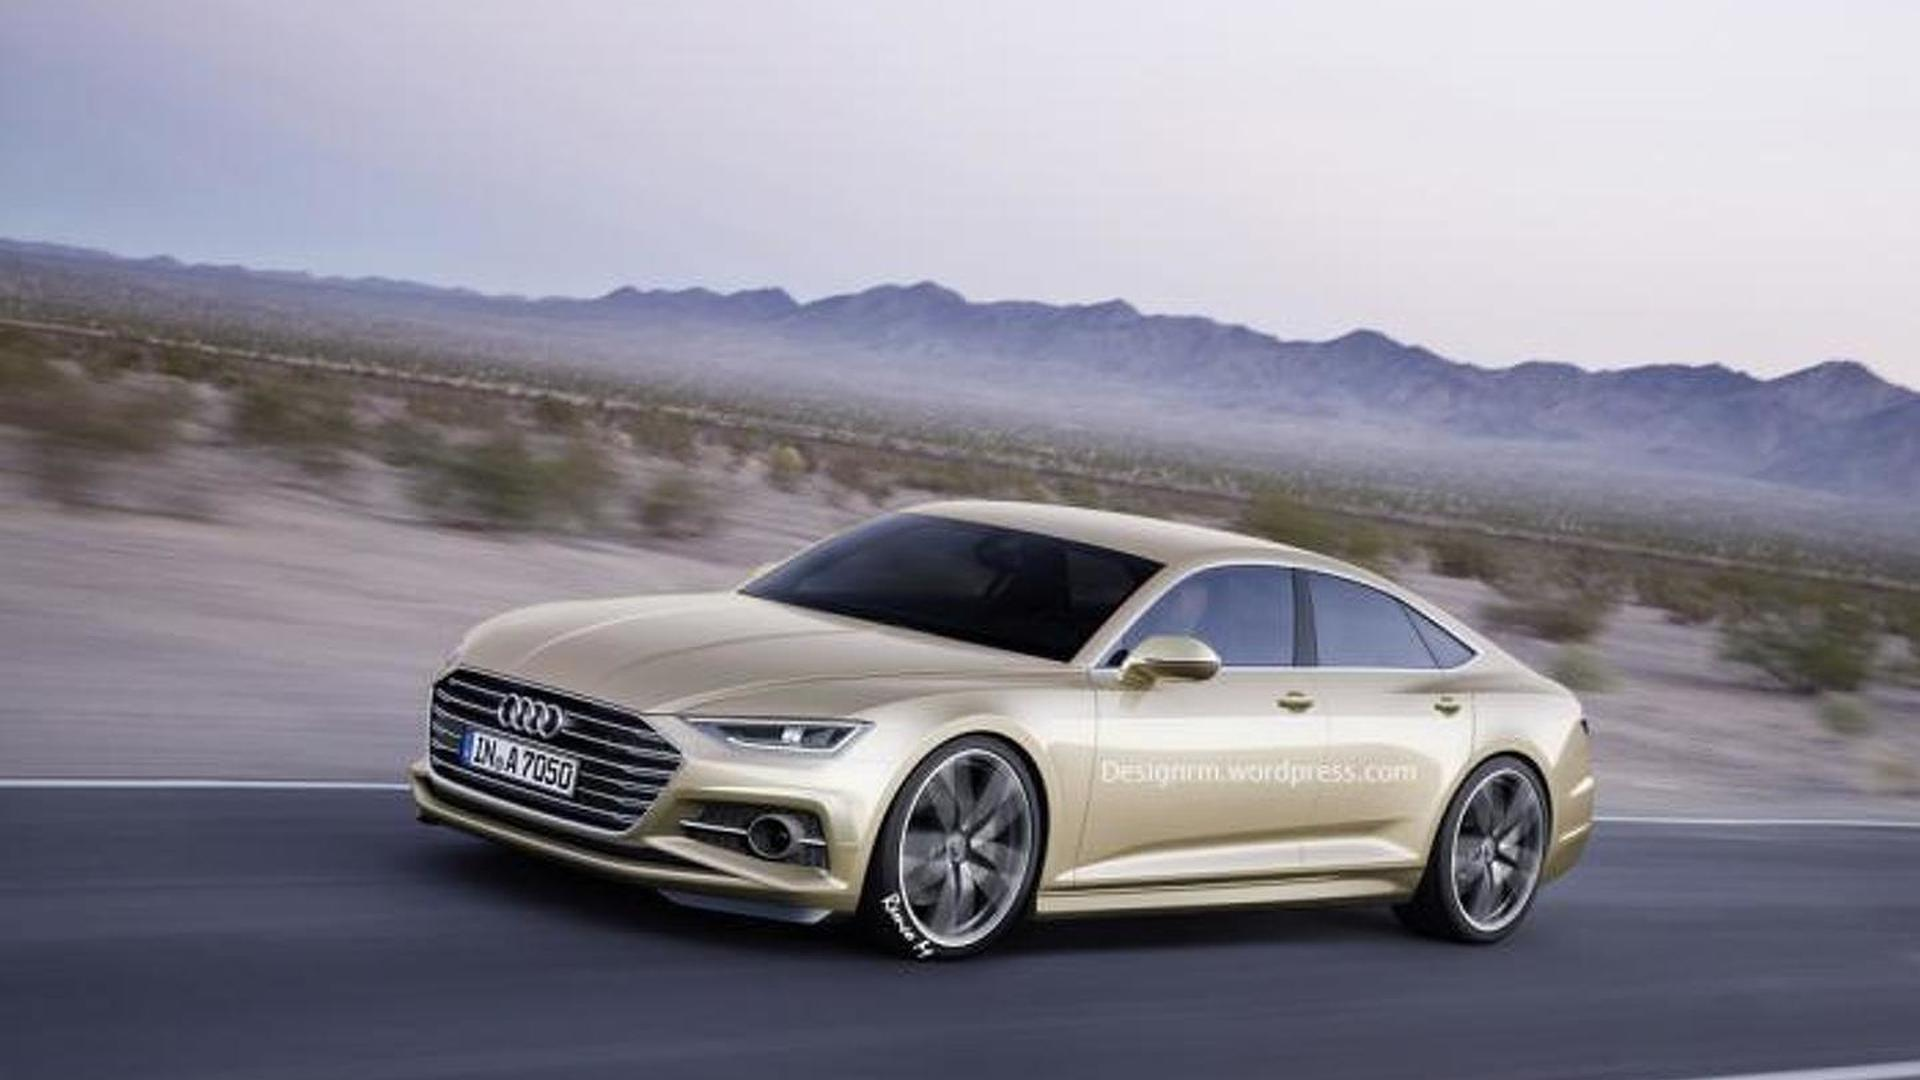 Second Generation Audi A Sportback Rendered With Prologue Concept - Audi 87